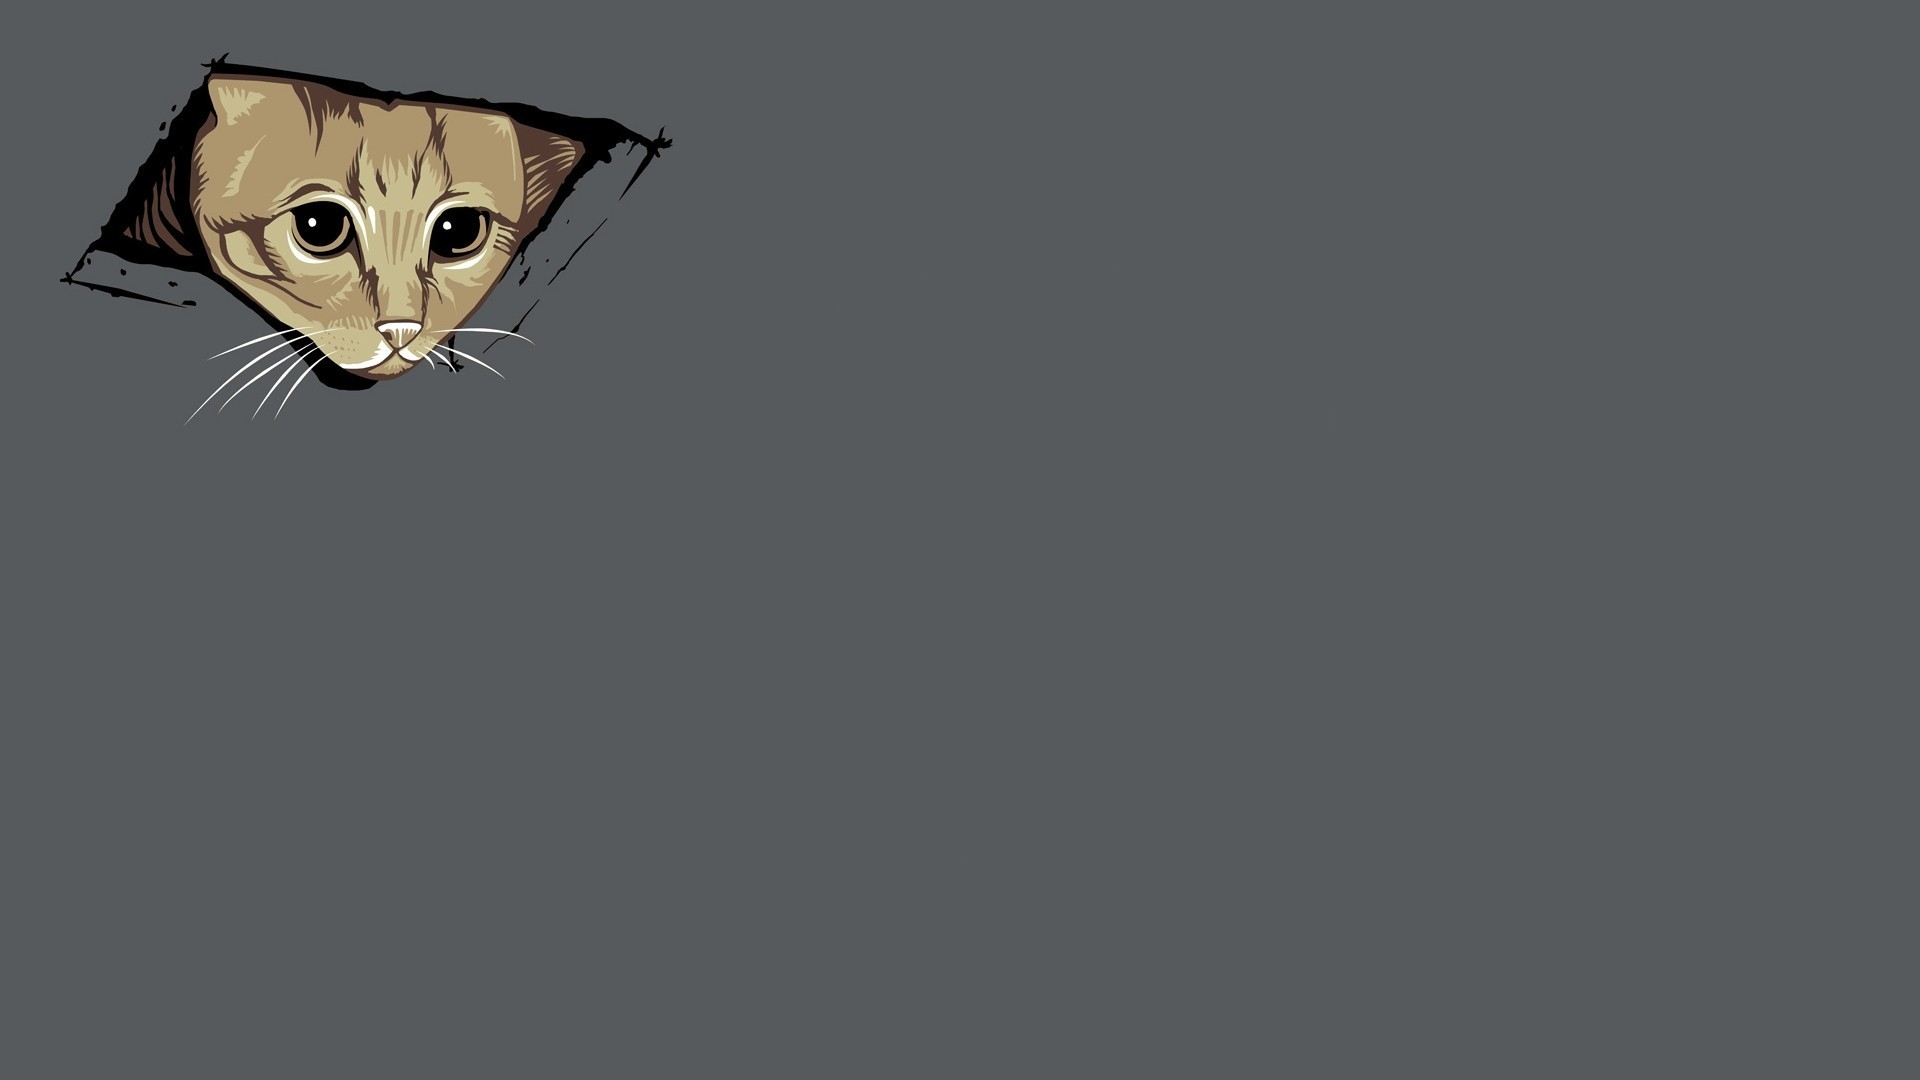 Abstract Cats Kittens Simple Simplistic Wallpaper Allwallpaper In